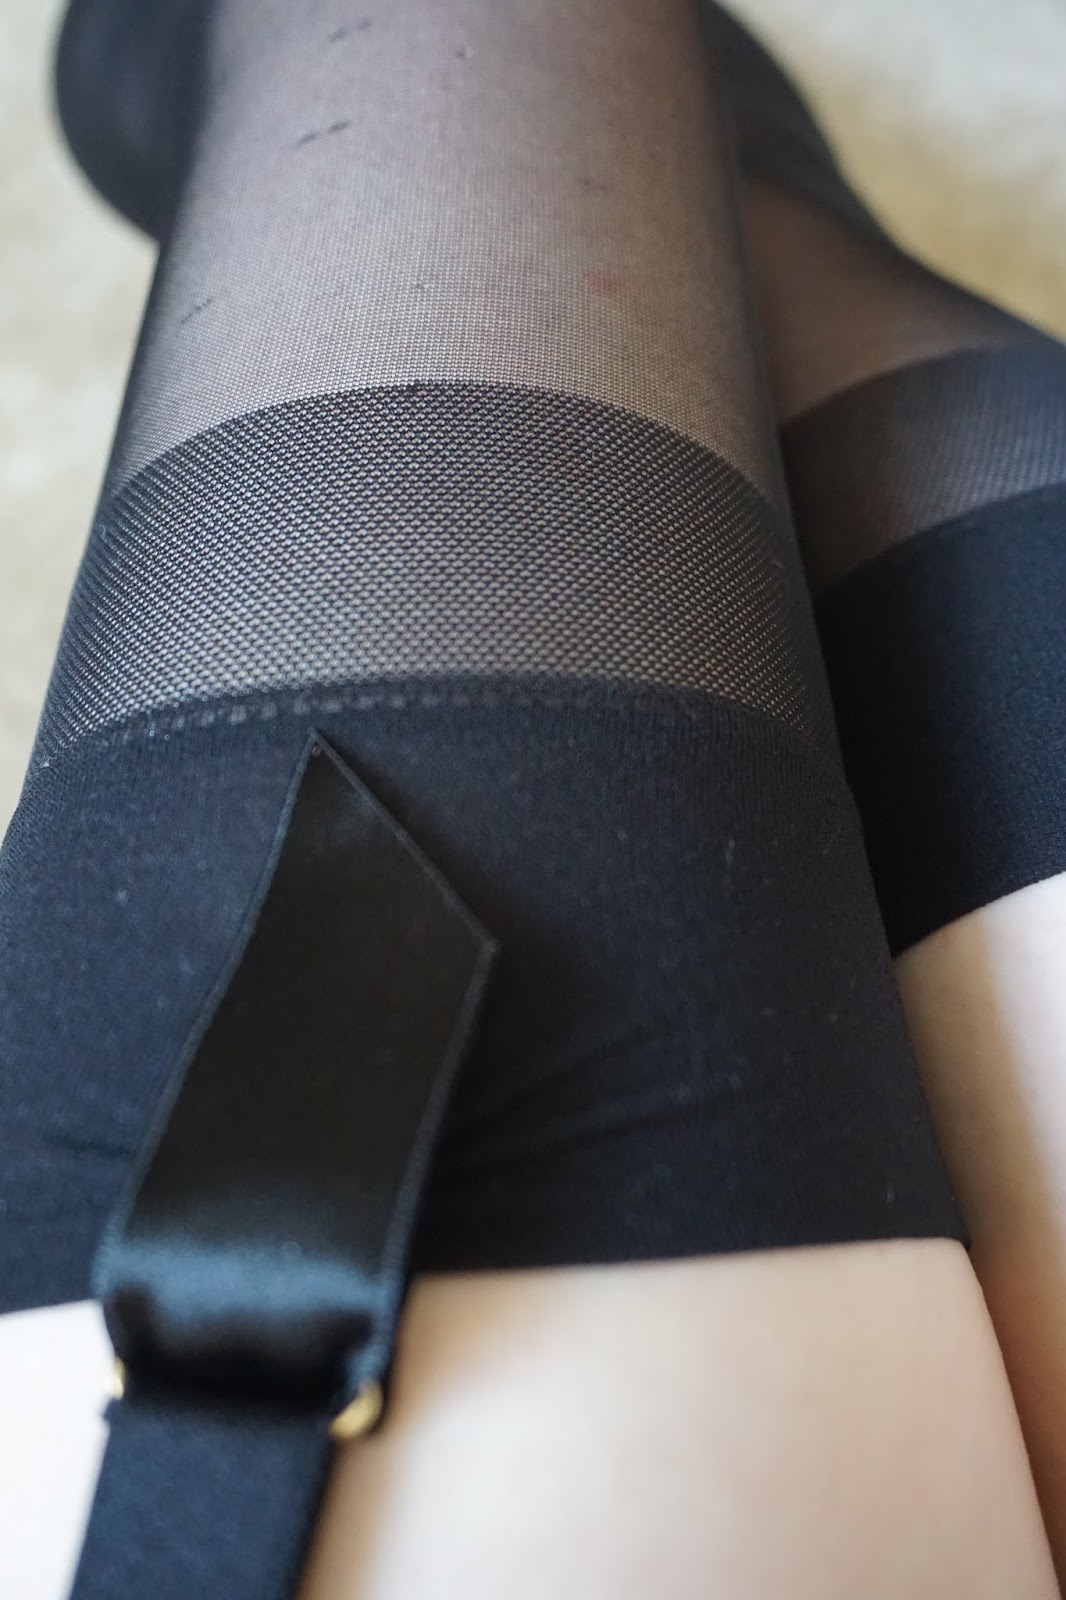 Shop apssocial.ml for the largest selection of top quality pantyhose, hosiery, sheers, tights, knee hi's, shapewear and socks for women and plus size women.